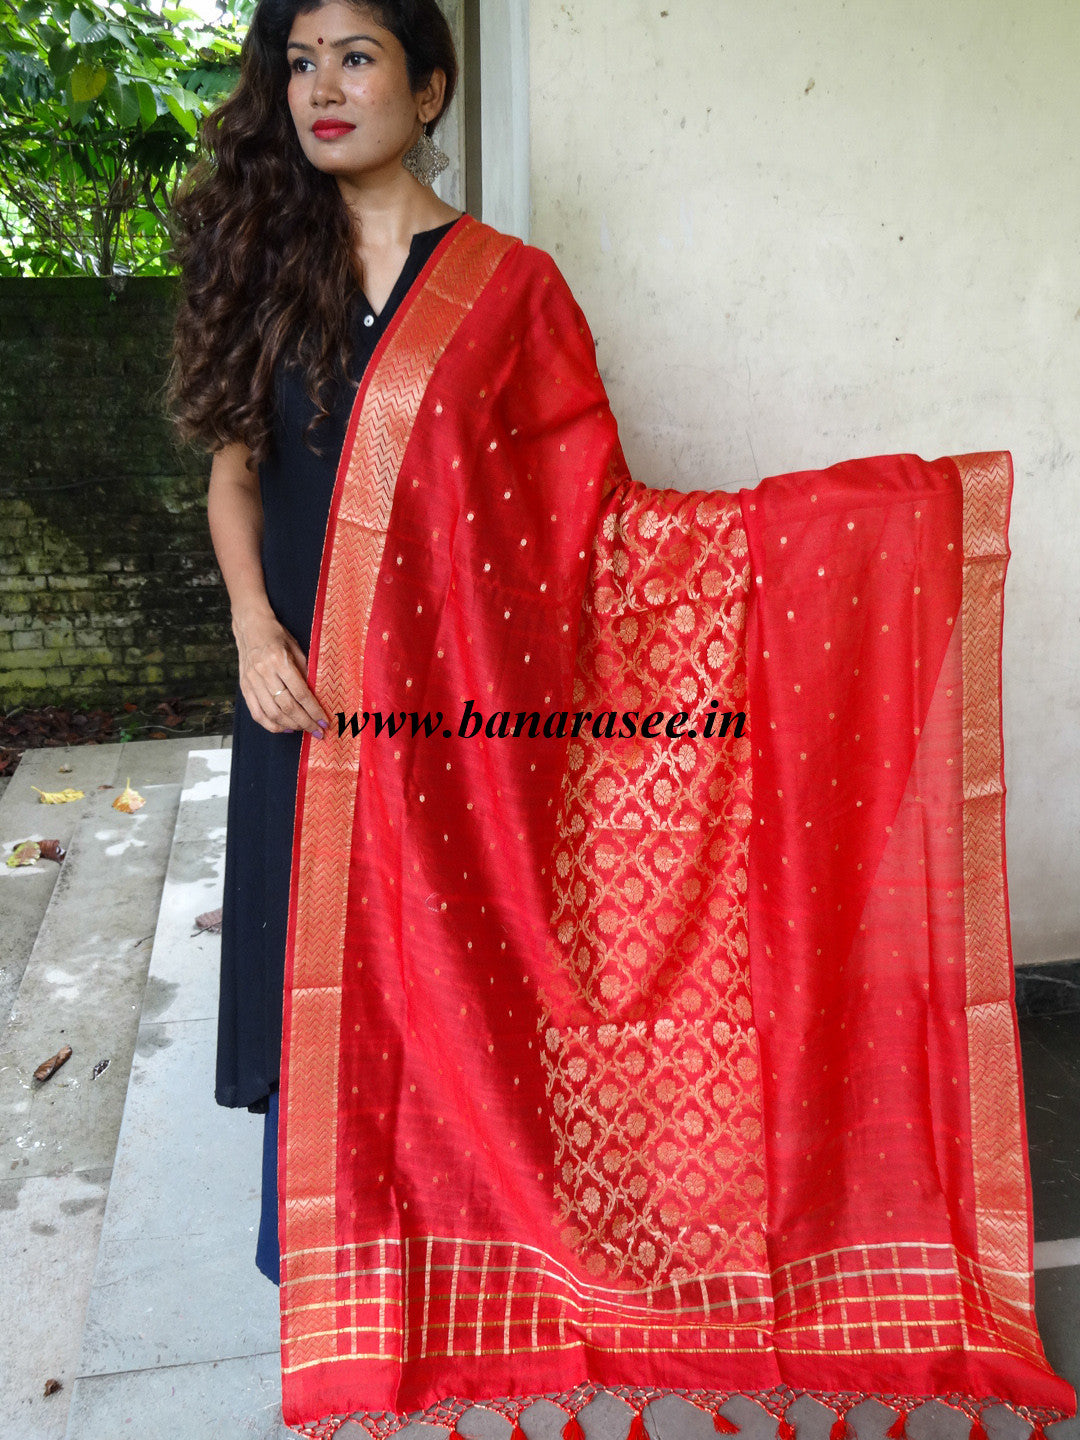 Banarasee/ Banarasi Cotton Silk Mix Zari Jaal Dupatta-Red